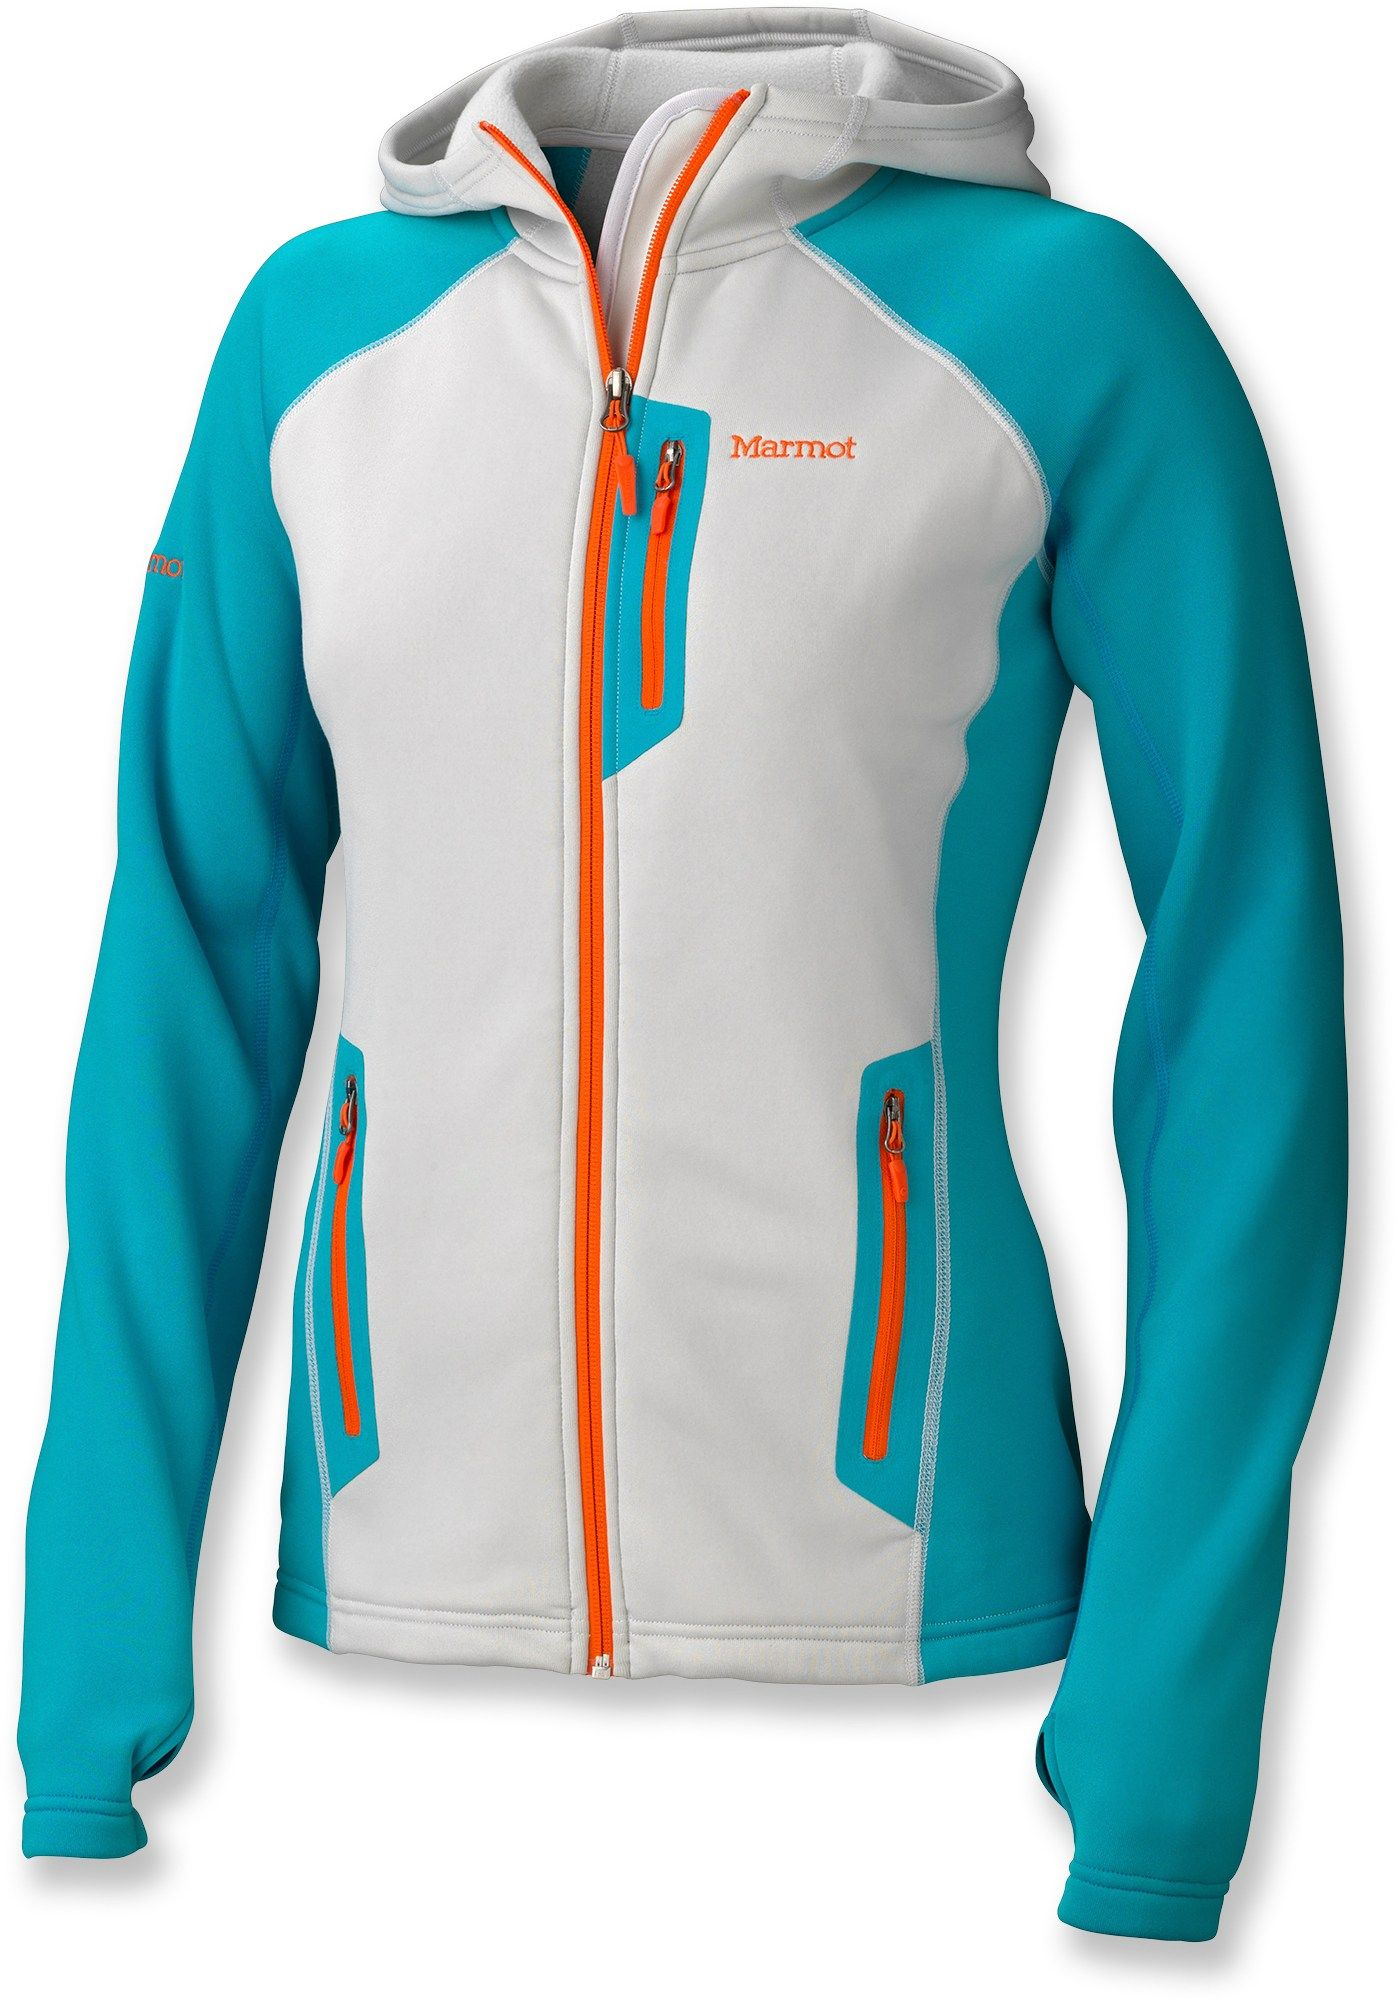 The Marmot Power Stretch Hoodie Is Made Of Warm Breathable Polartec Power Stretch To Keep You Comfortable When Running Hoodies Womens Hoodies Running Jacket [ 2000 x 1396 Pixel ]